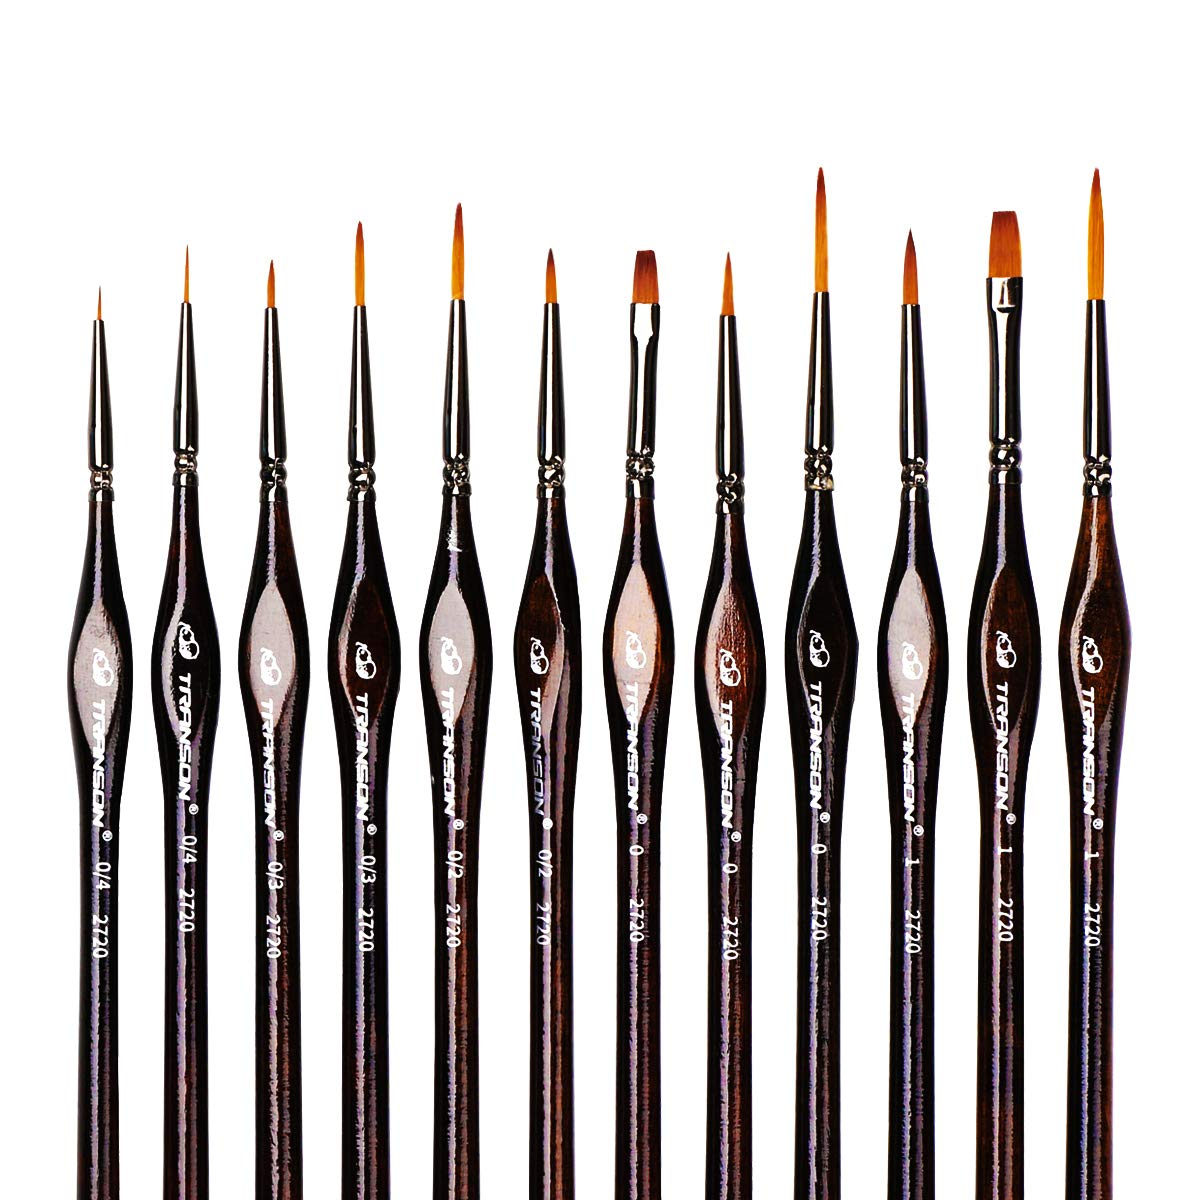 Transon Artist Detail Paint Brushes with Case 12pces for Miniatures, Models, Acrylics, Oil, Tempera, Enamel, and Body Painting by Transon